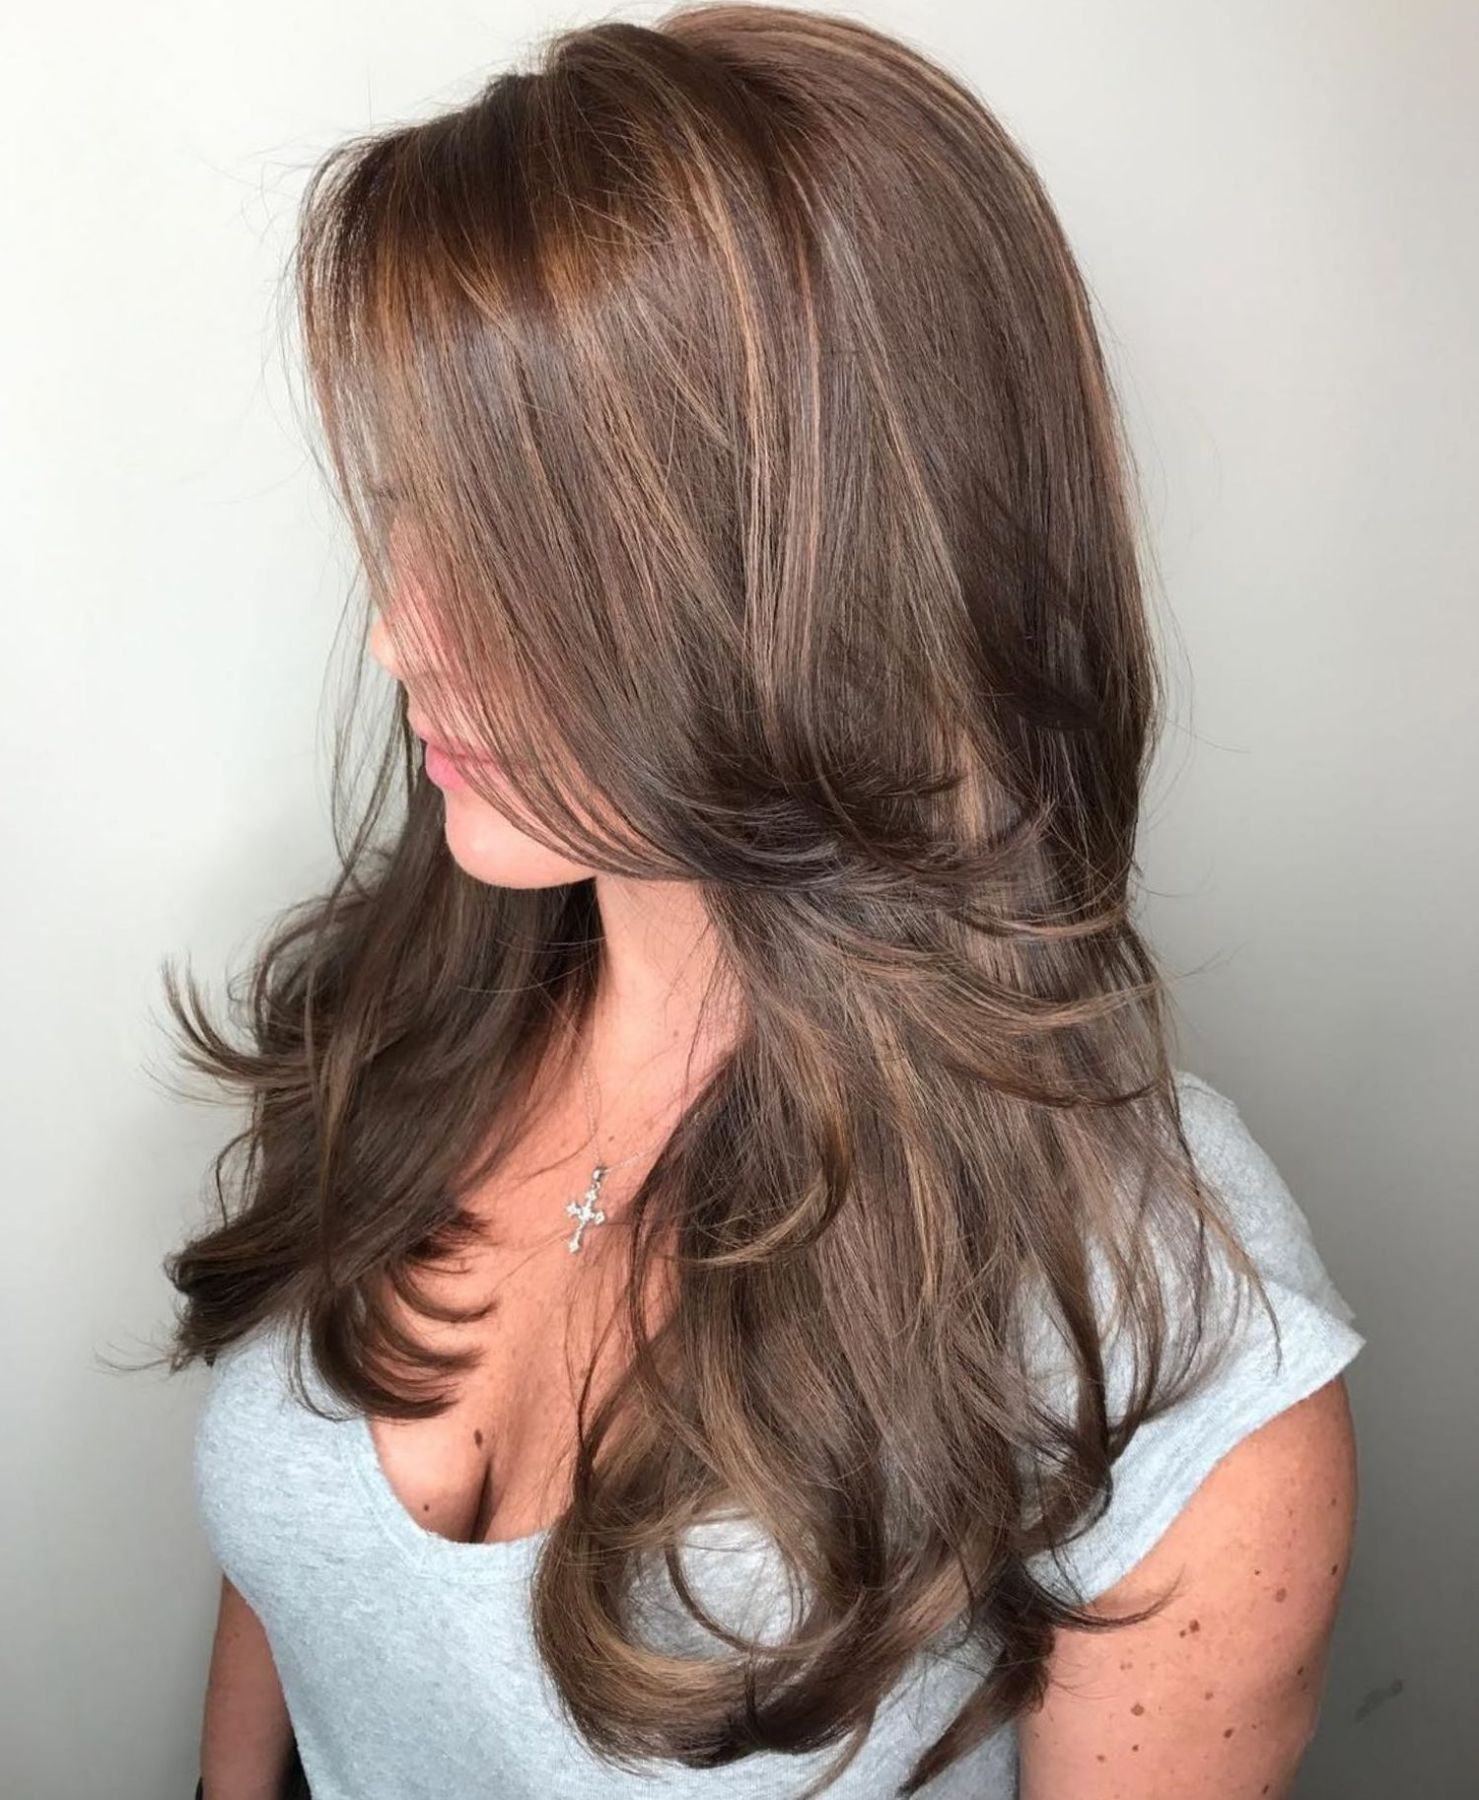 Long Hairstyle With Face Framing Layers Lang Haar Kapsels Kapsel Lang Haar Laagjes Kapsels Lang Haar Laagjes Stijl